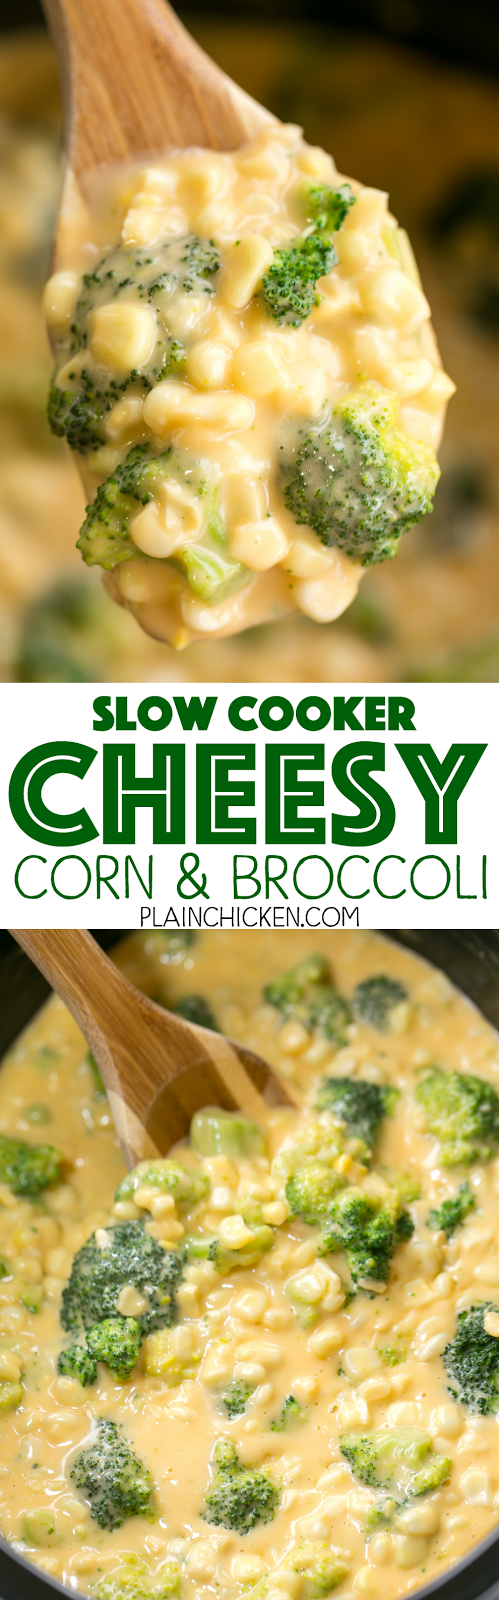 Slow Cooker Cheesy Corn and Broccoli - our favorite side dish! Corn, broccoli, Velveeta, cheddar cheese, cream of chicken soup and milk. Just throw everything in the slow cooker and let it work its magic. Can add ham to the slow cooker and make this a main dish. Everyone LOVES this cheesy side dish!!!